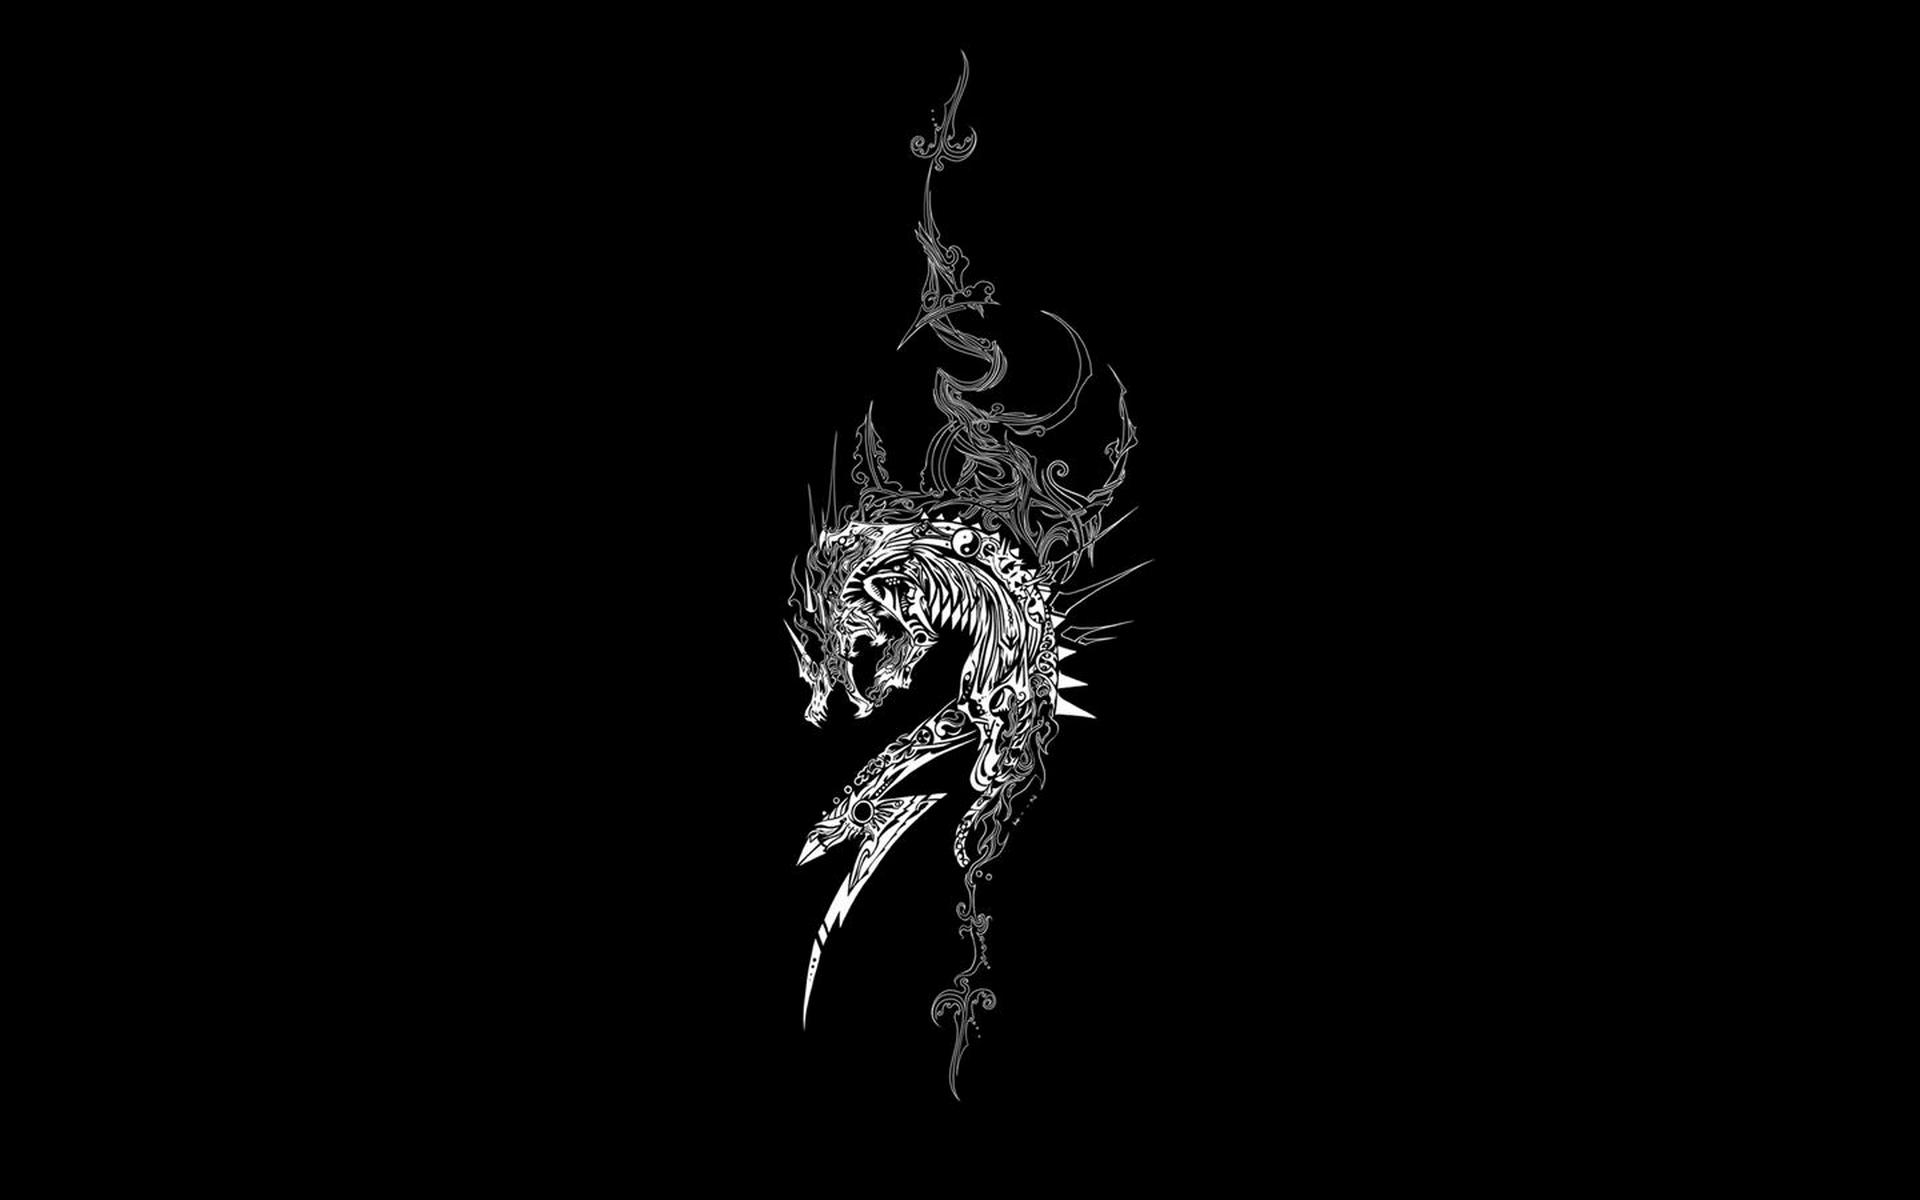 Dragon Black Wallpaper